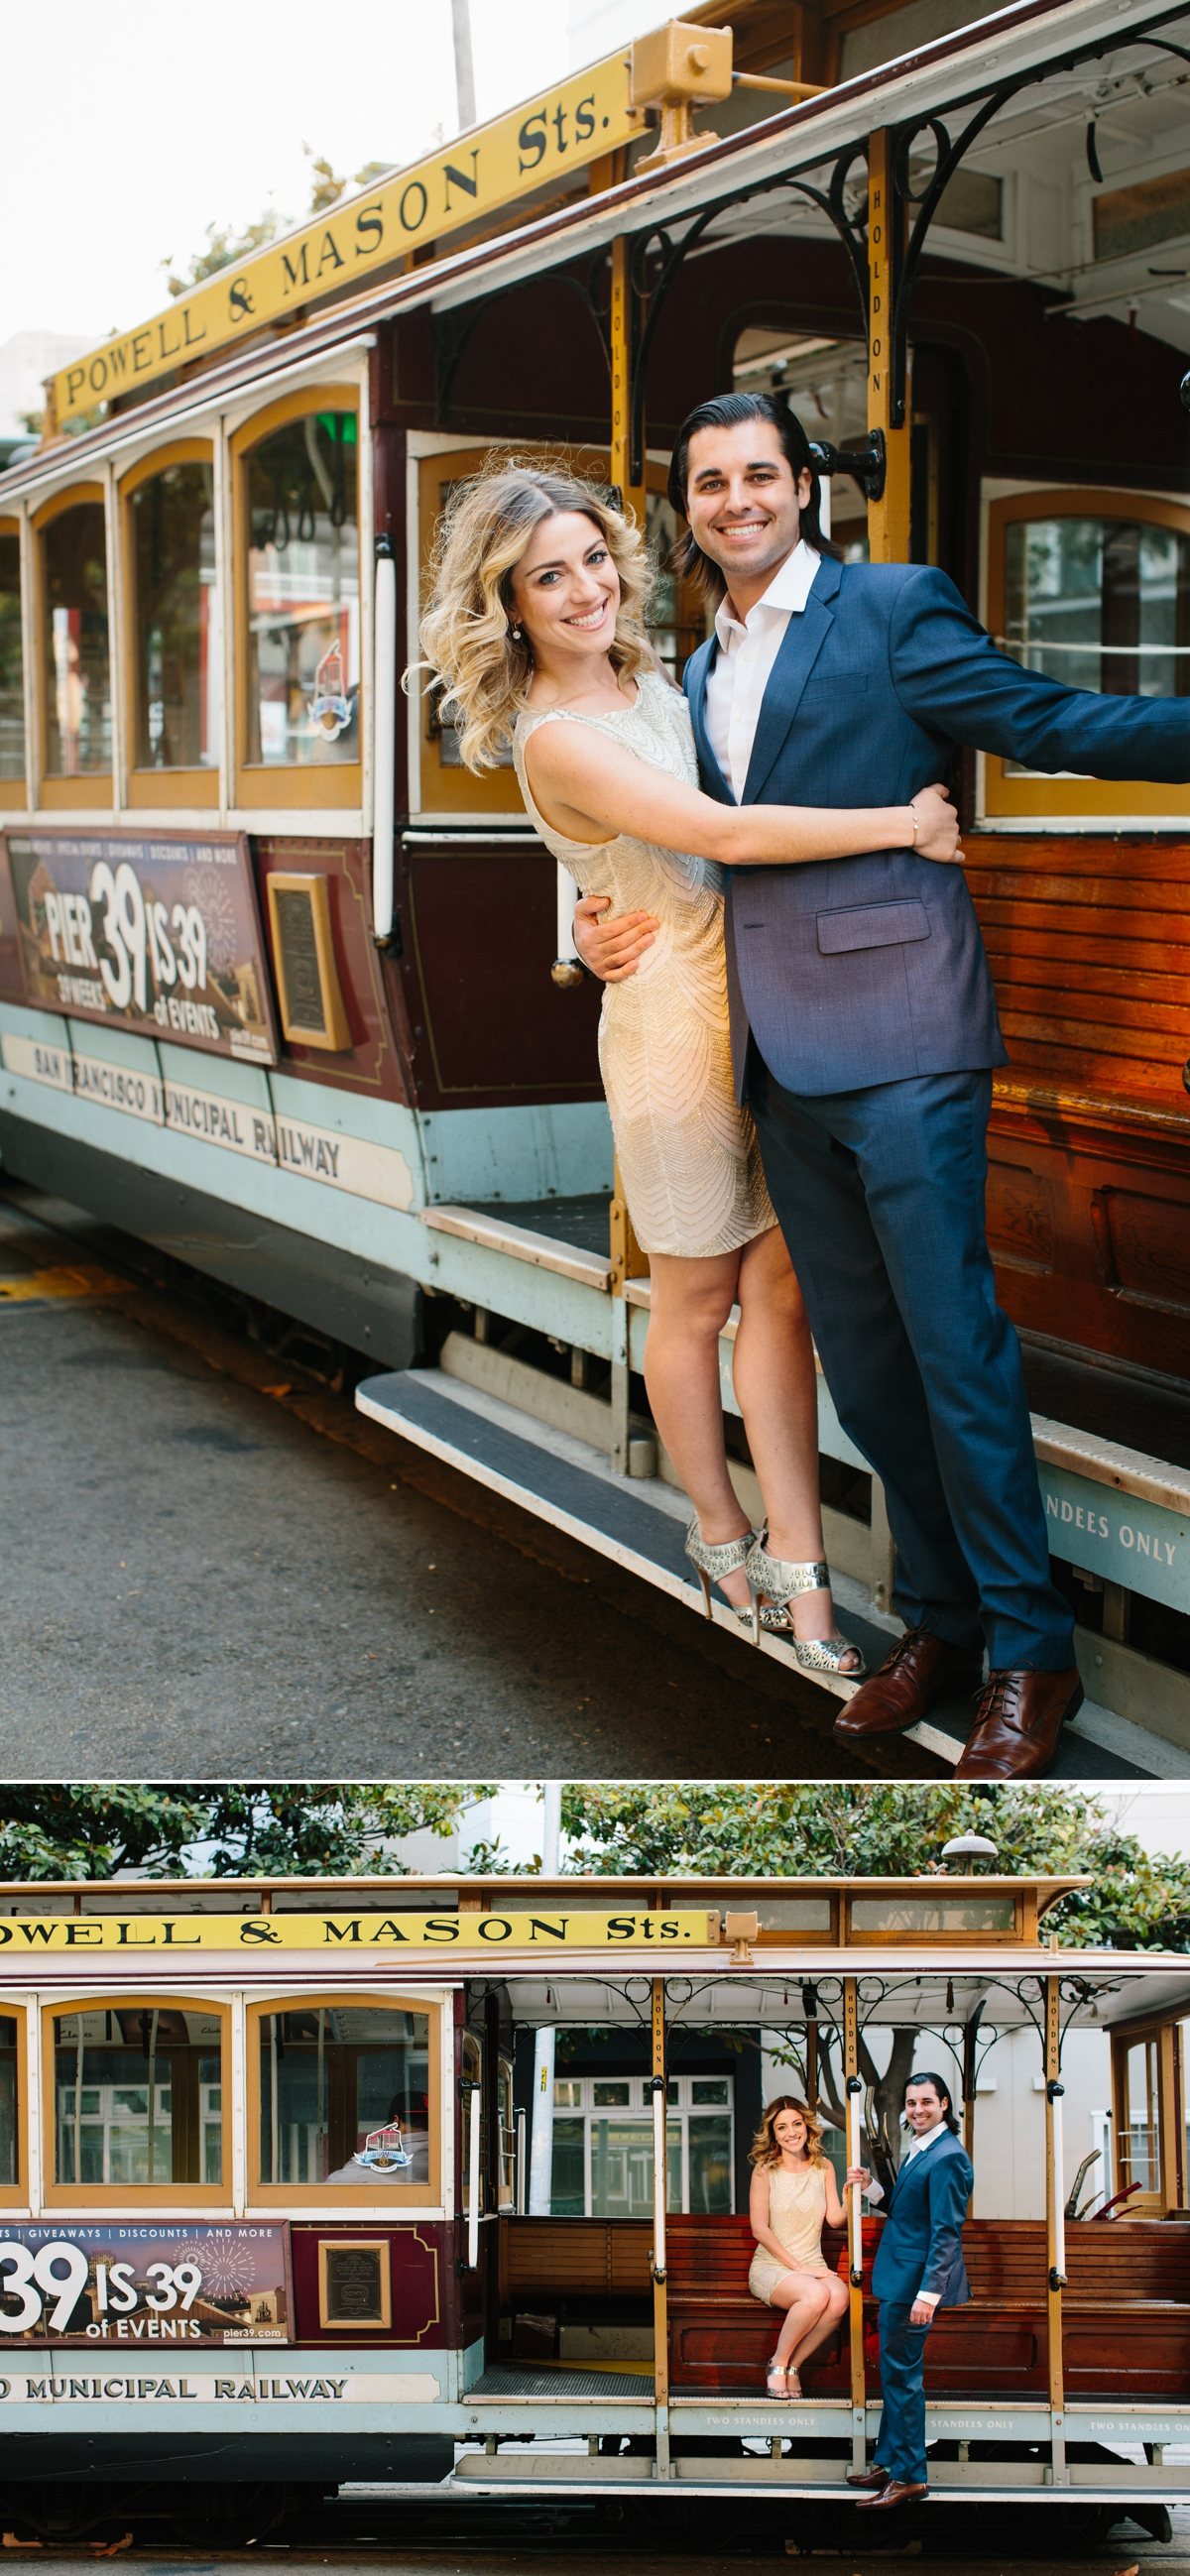 No trip to San Francisco is complete with a ride on the classic cable car!